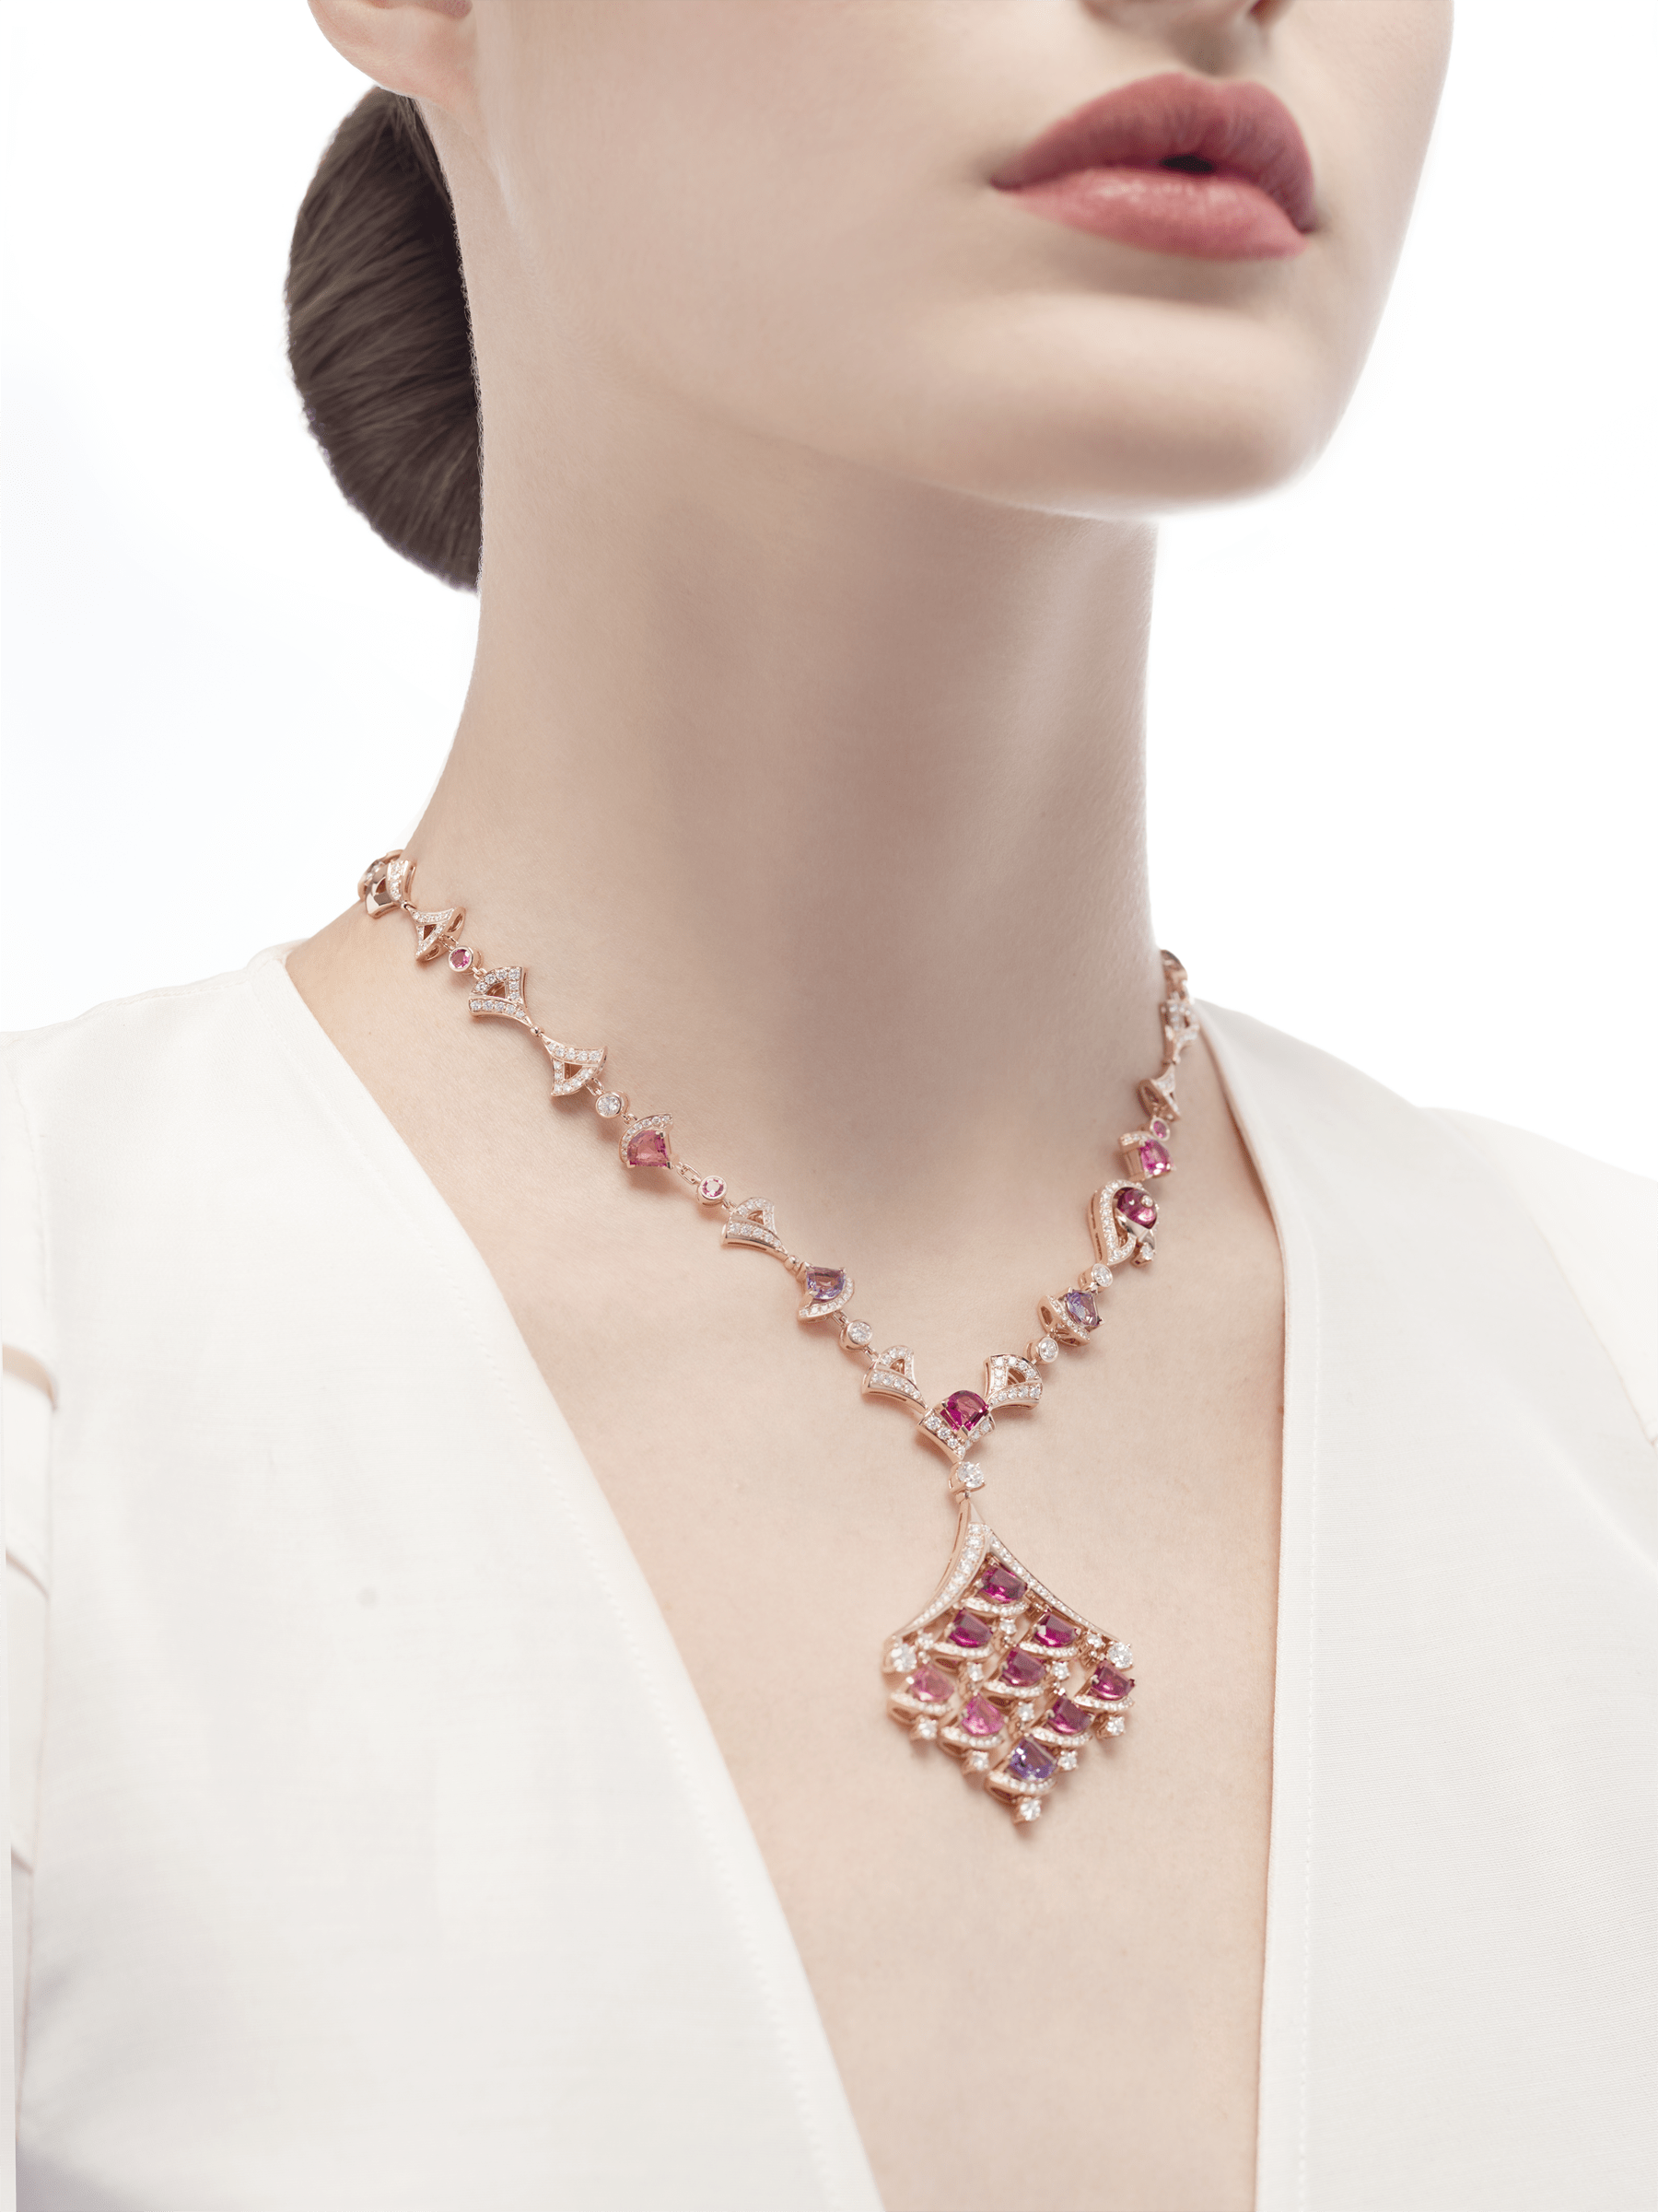 DIVAS' DREAM necklace in 18 kt rose gold set with pink rubellite (3.50 ct), pink tourmaline (8.30 ct) amethysts (2.50 ct) and pavé diamonds (6.75 ct). 354074 image 2